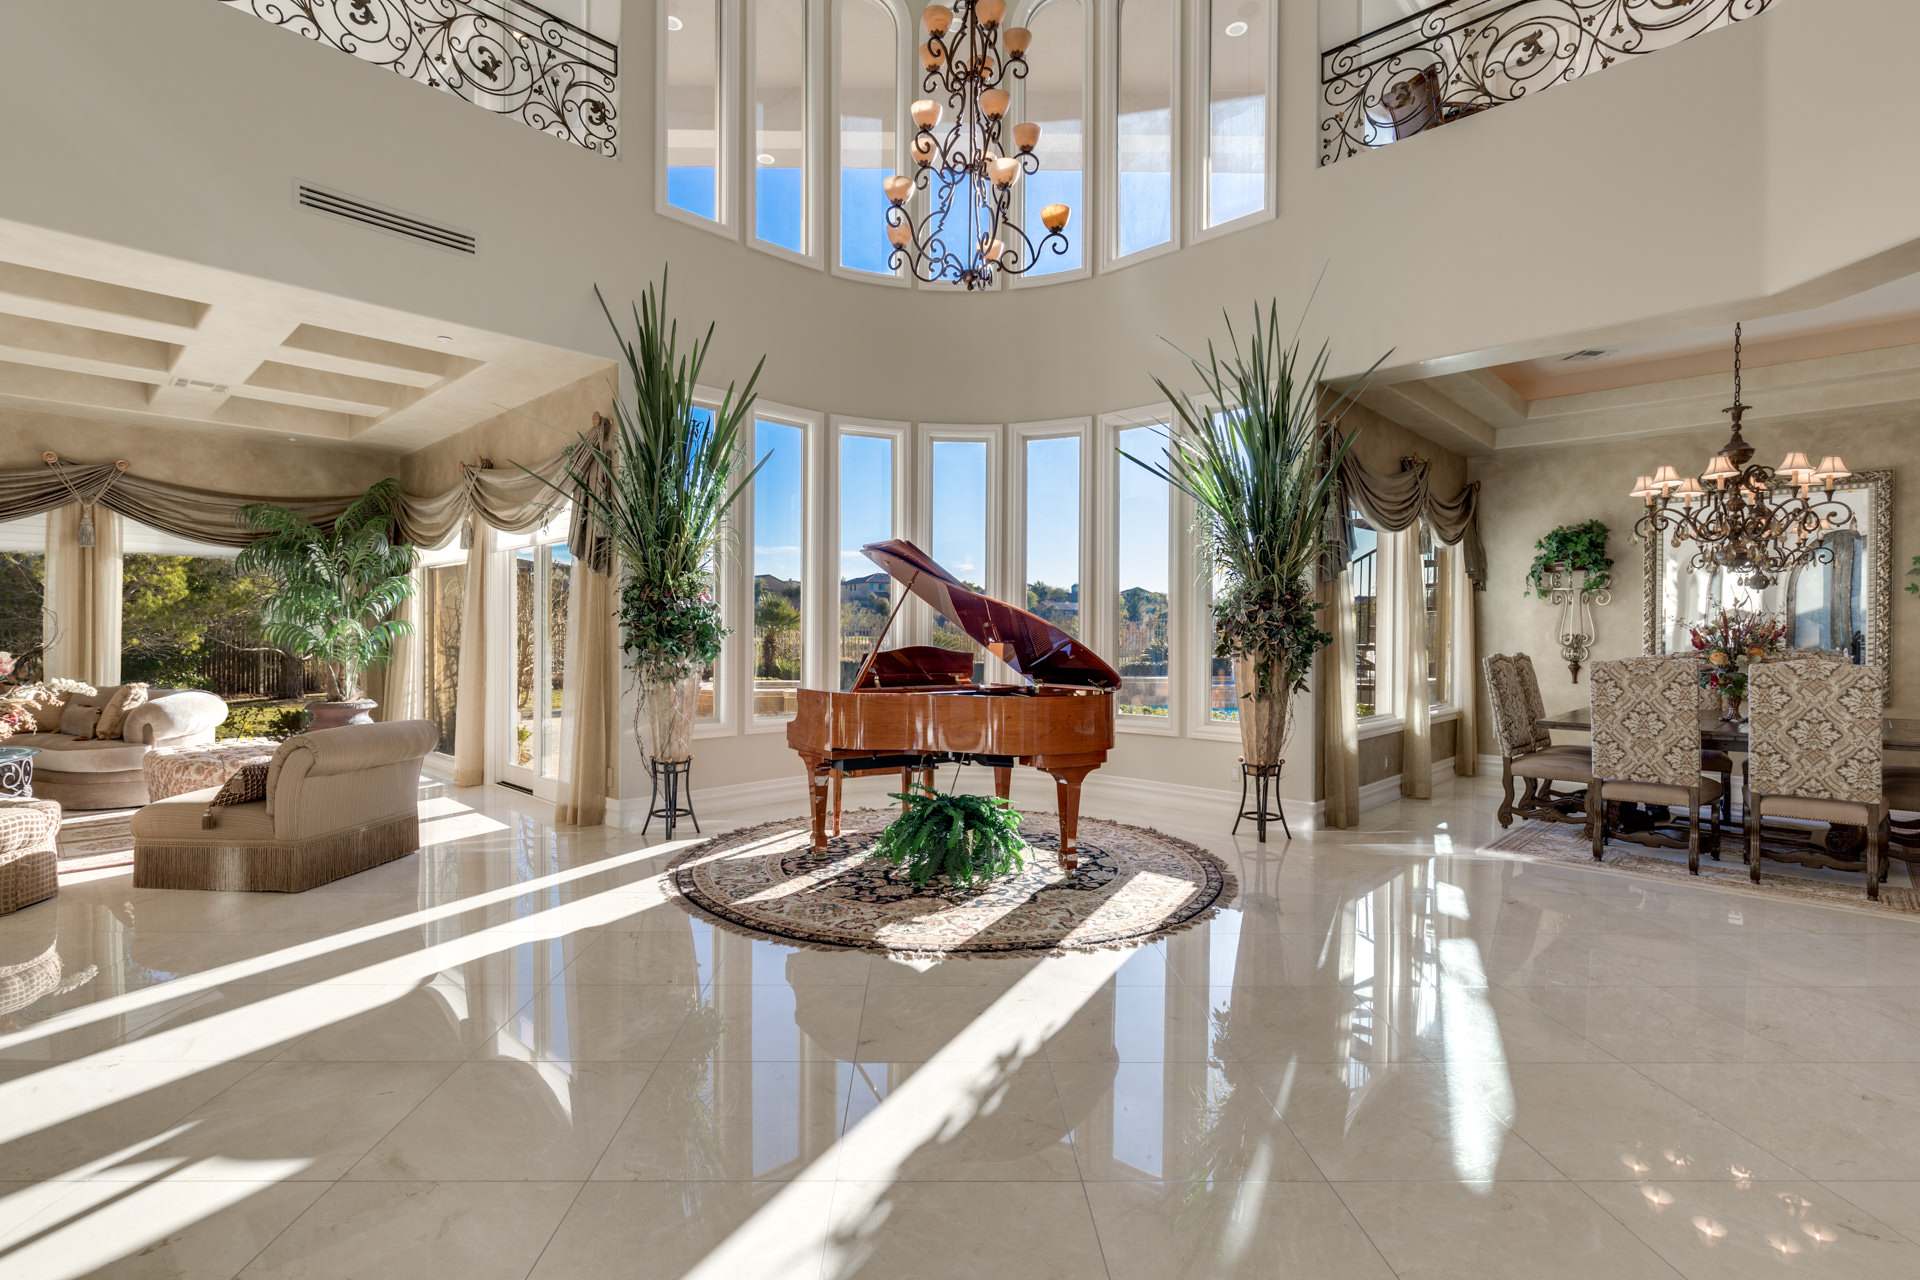 Million dollar homes in las vegas for sale 1m 3m for Best house anthems